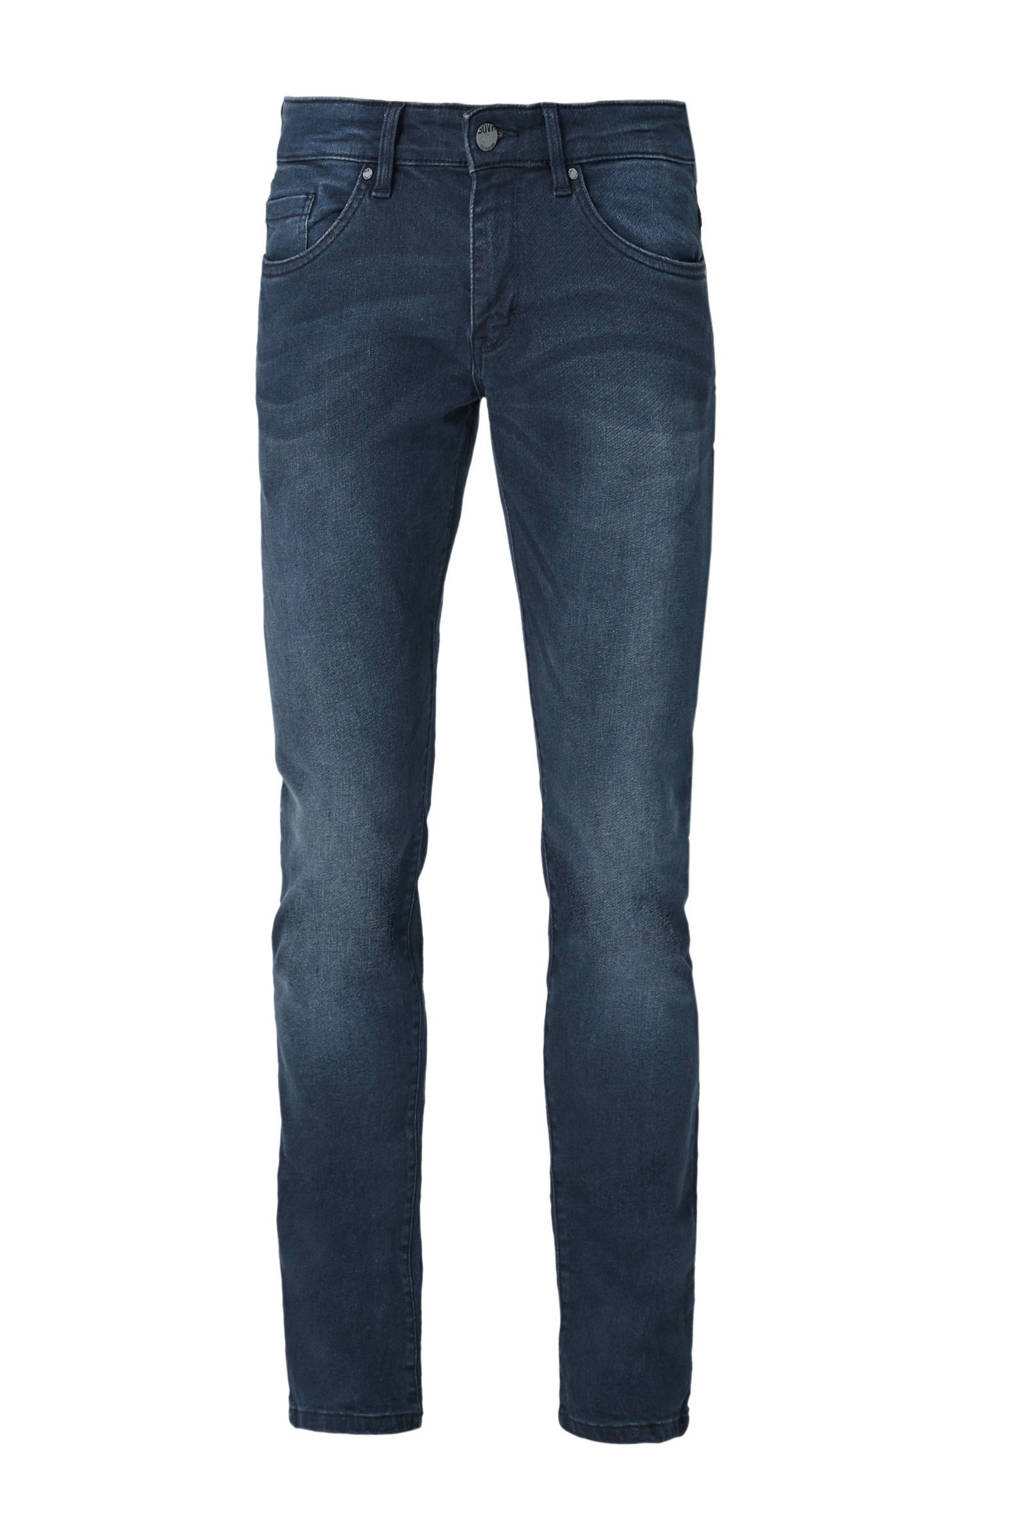 s.Oliver  skinny skinny fit jeans, Dark denim